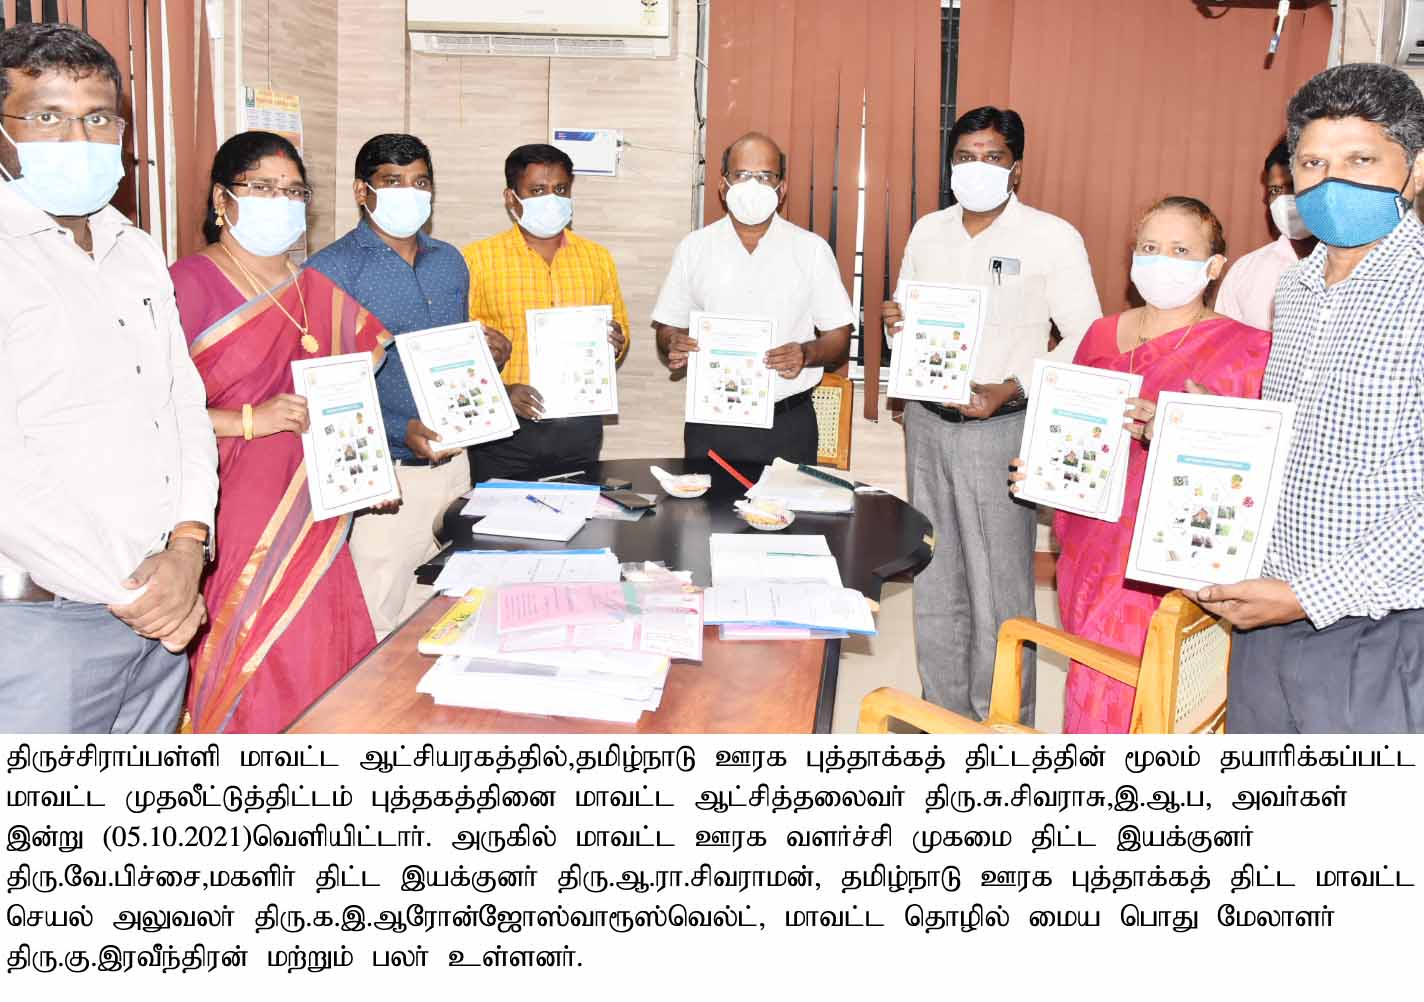 District Collector releasedsd district investment plan book on 05.10.21